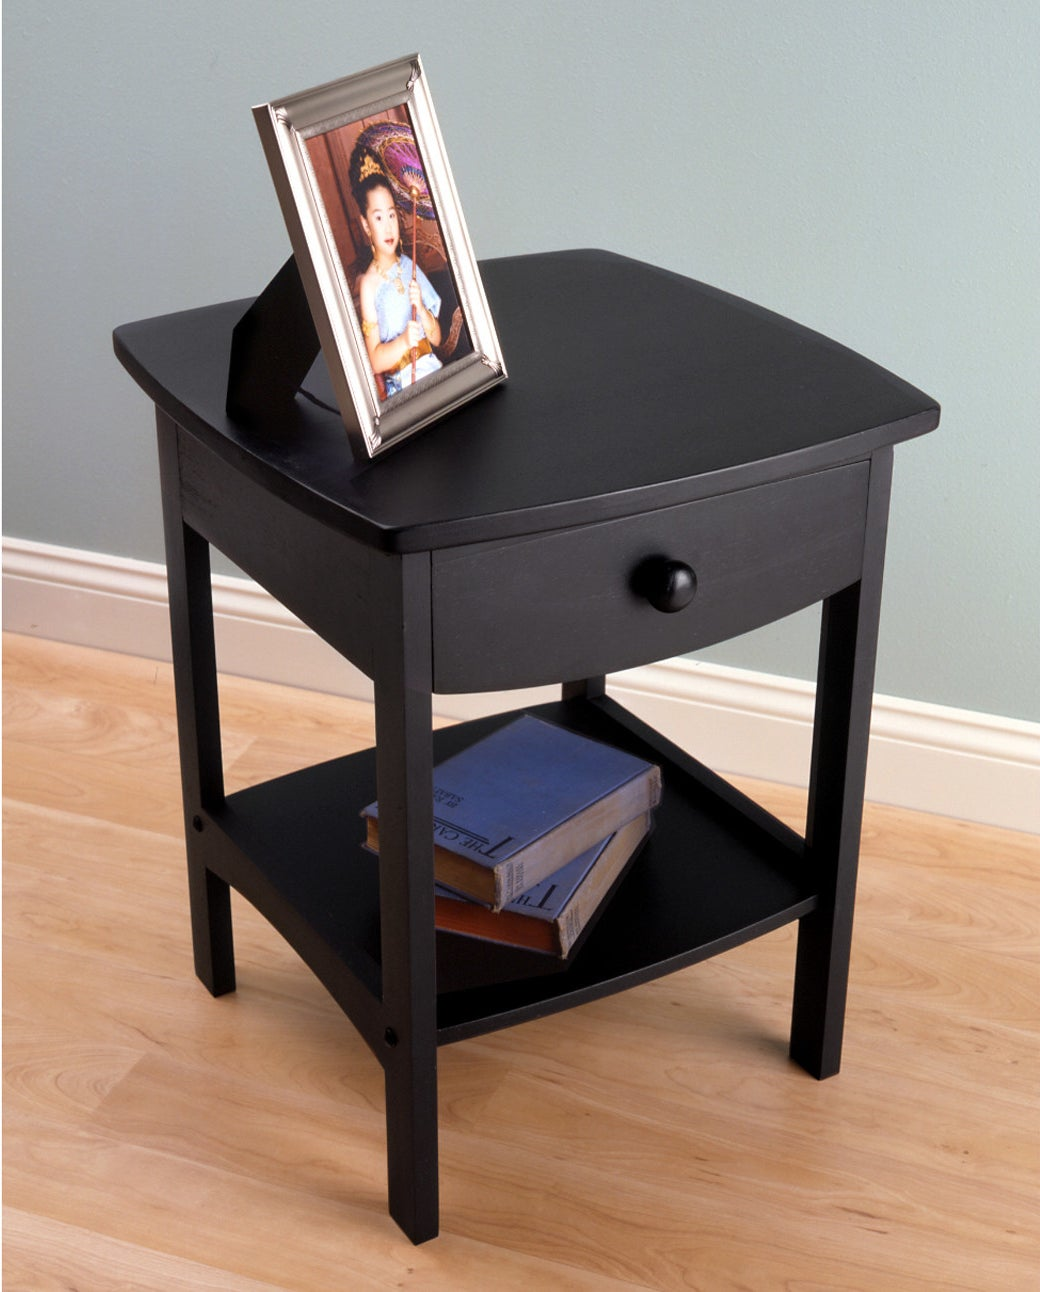 """Promising review: """"These were just what I was looking for. I wanted a square table with rounded edges so if kiddos bump into it, it's not a sharp corner. I love that these are real wood and you can tell because they're heavy. Very easy to put together, just the right height and size. They do not look cheap like particle board tables sometimes do."""" —jbiersPrice: $36.62+ (available in four colors)"""